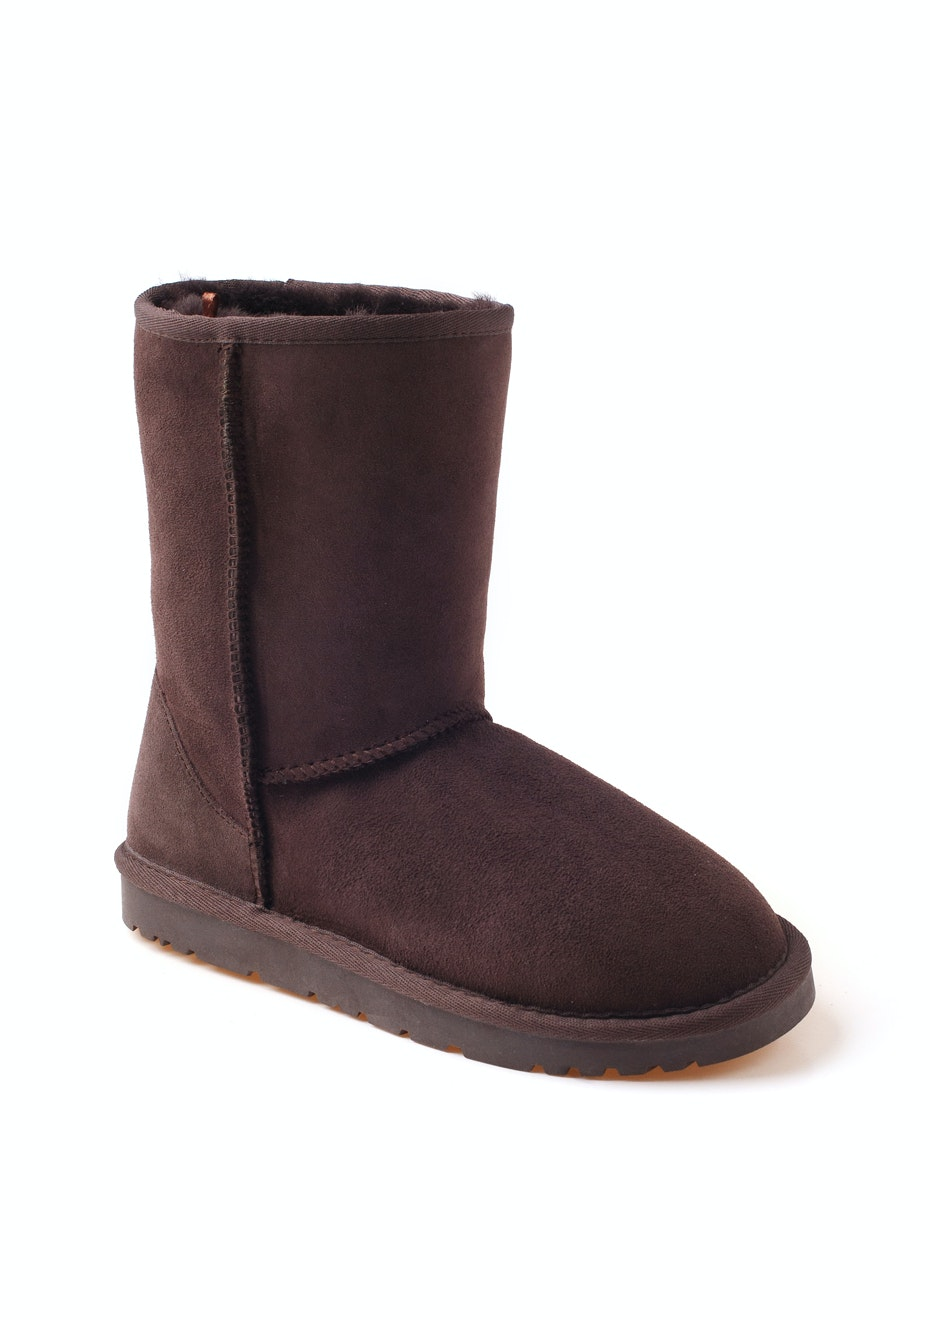 Ozwear - Classic UGG 3/4 Boots - Chocolate